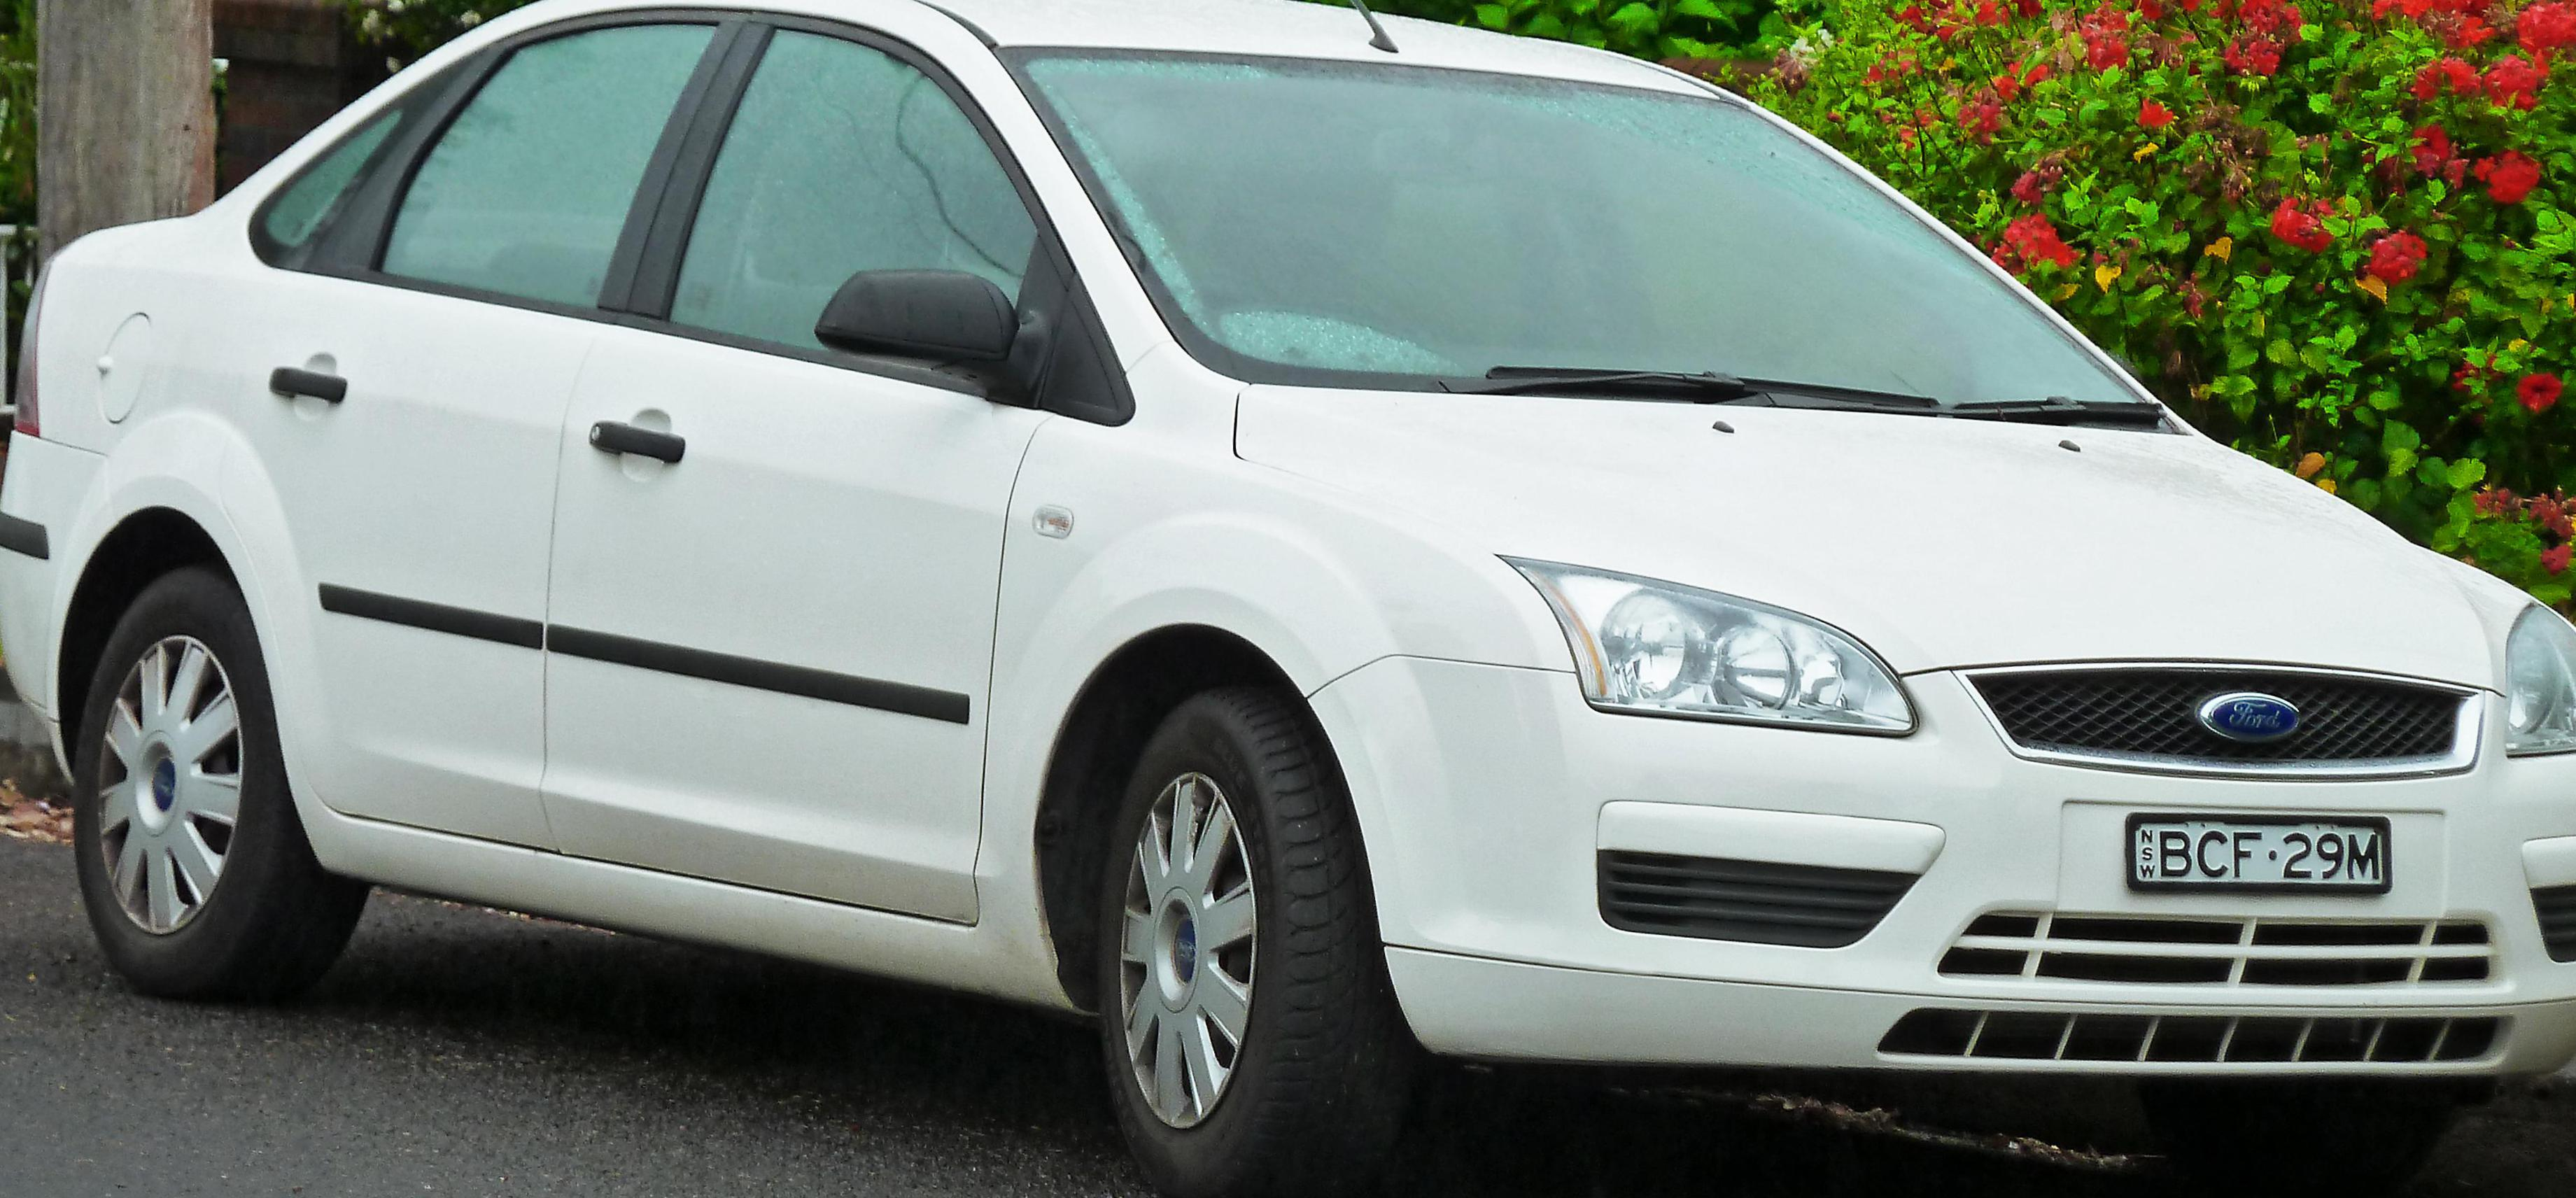 Ford Focus Sedan model 2009